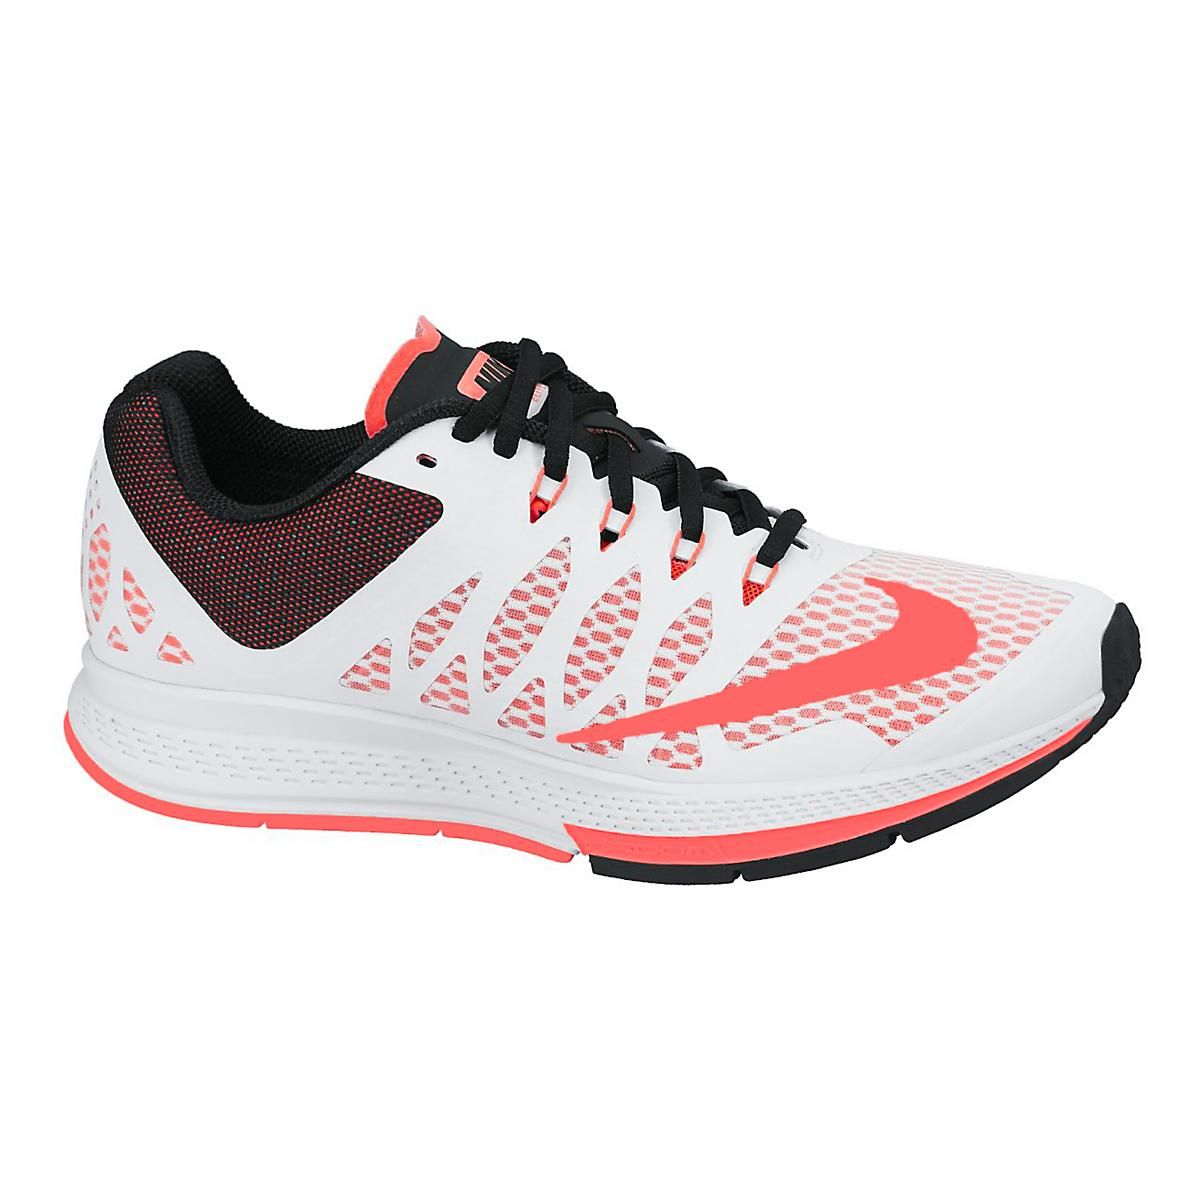 new arrival 89a0a e7691 Air Zoom Elite 7 | Running shoes and Running